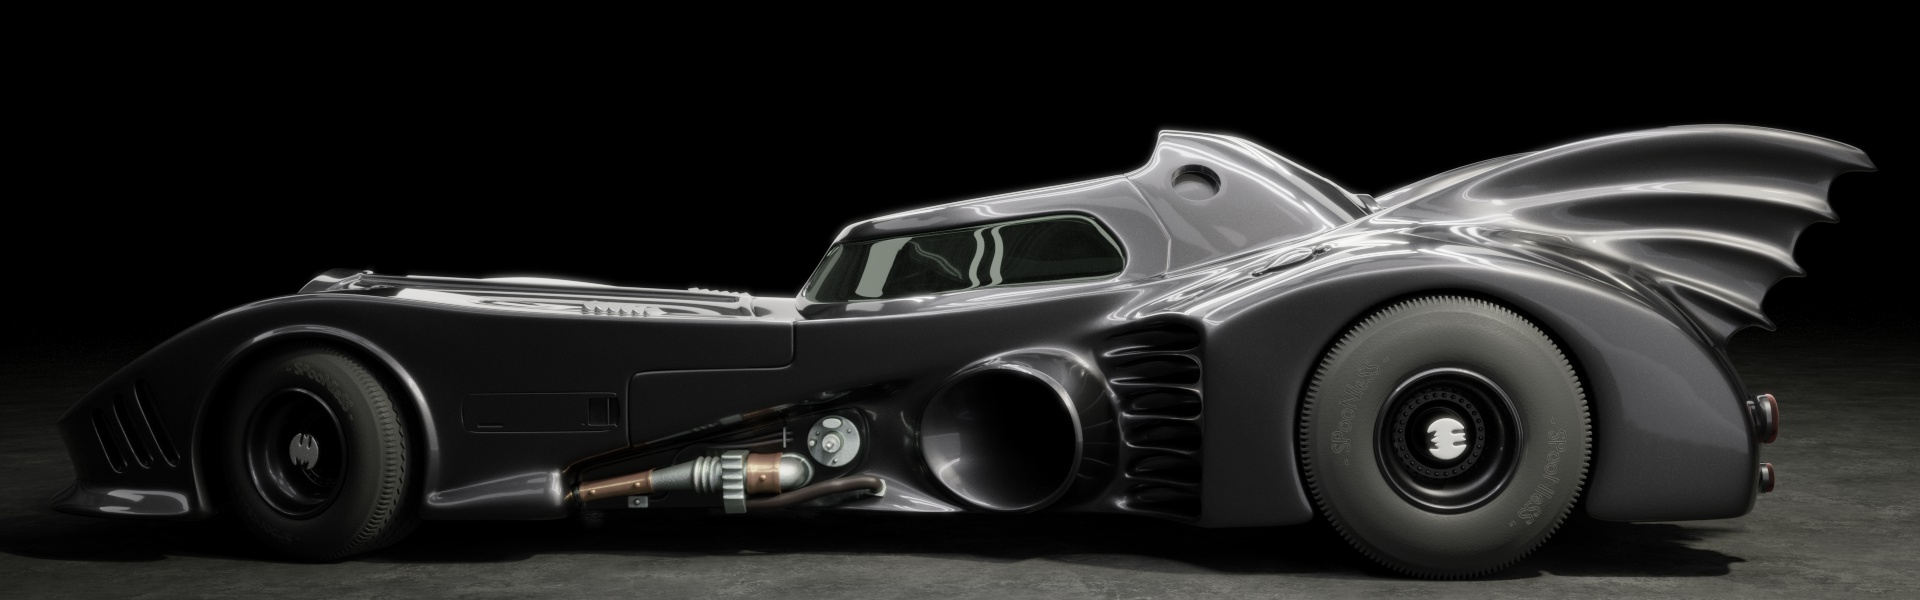 Batmobile on Car Models Fact Websites